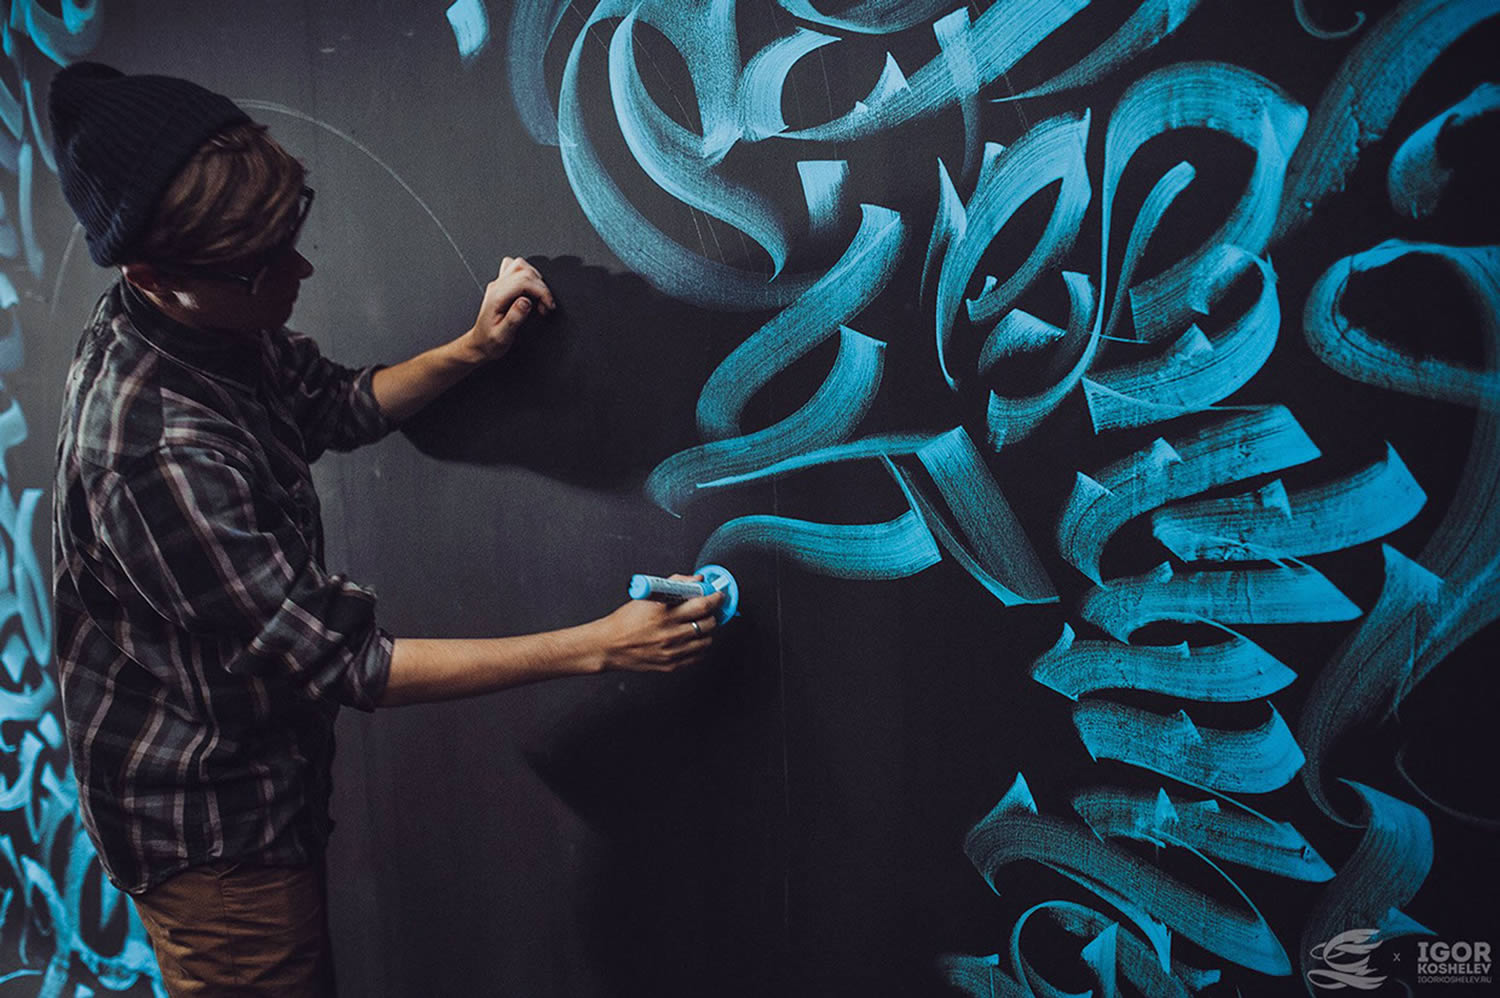 hand lettering on wall, calligraphy